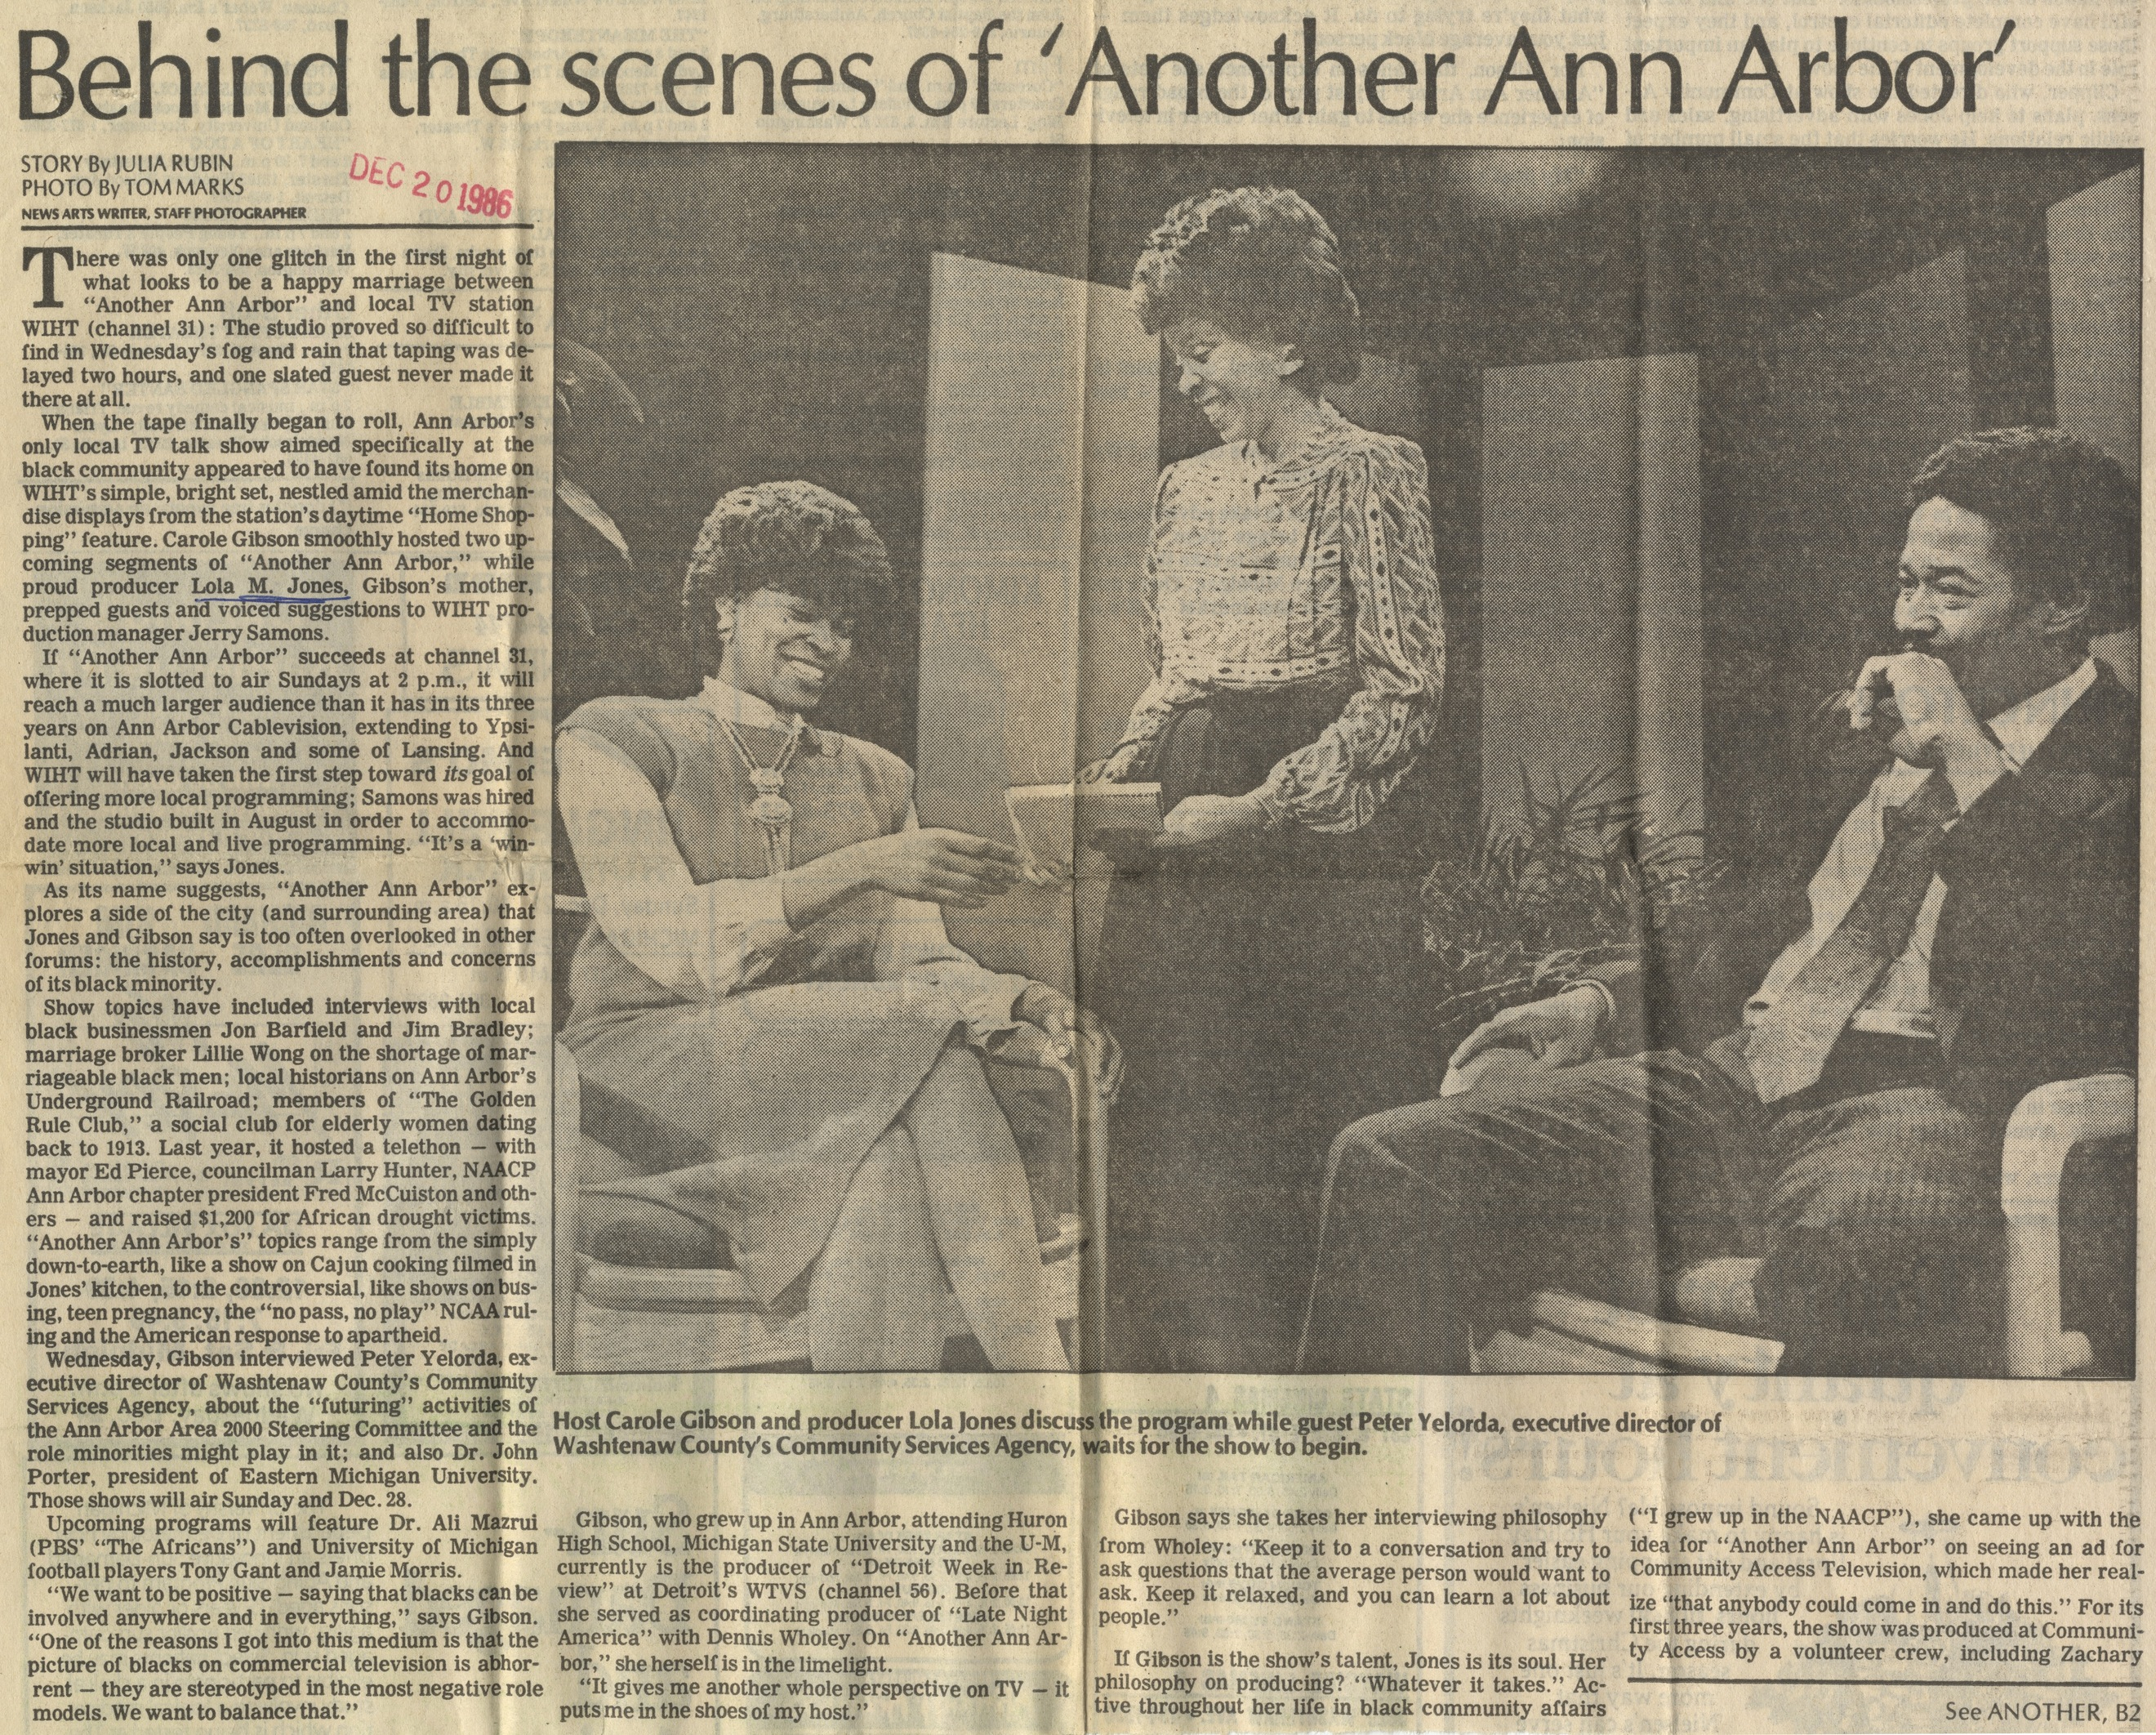 Behind The Scenes Of 'Another Ann Arbor' image